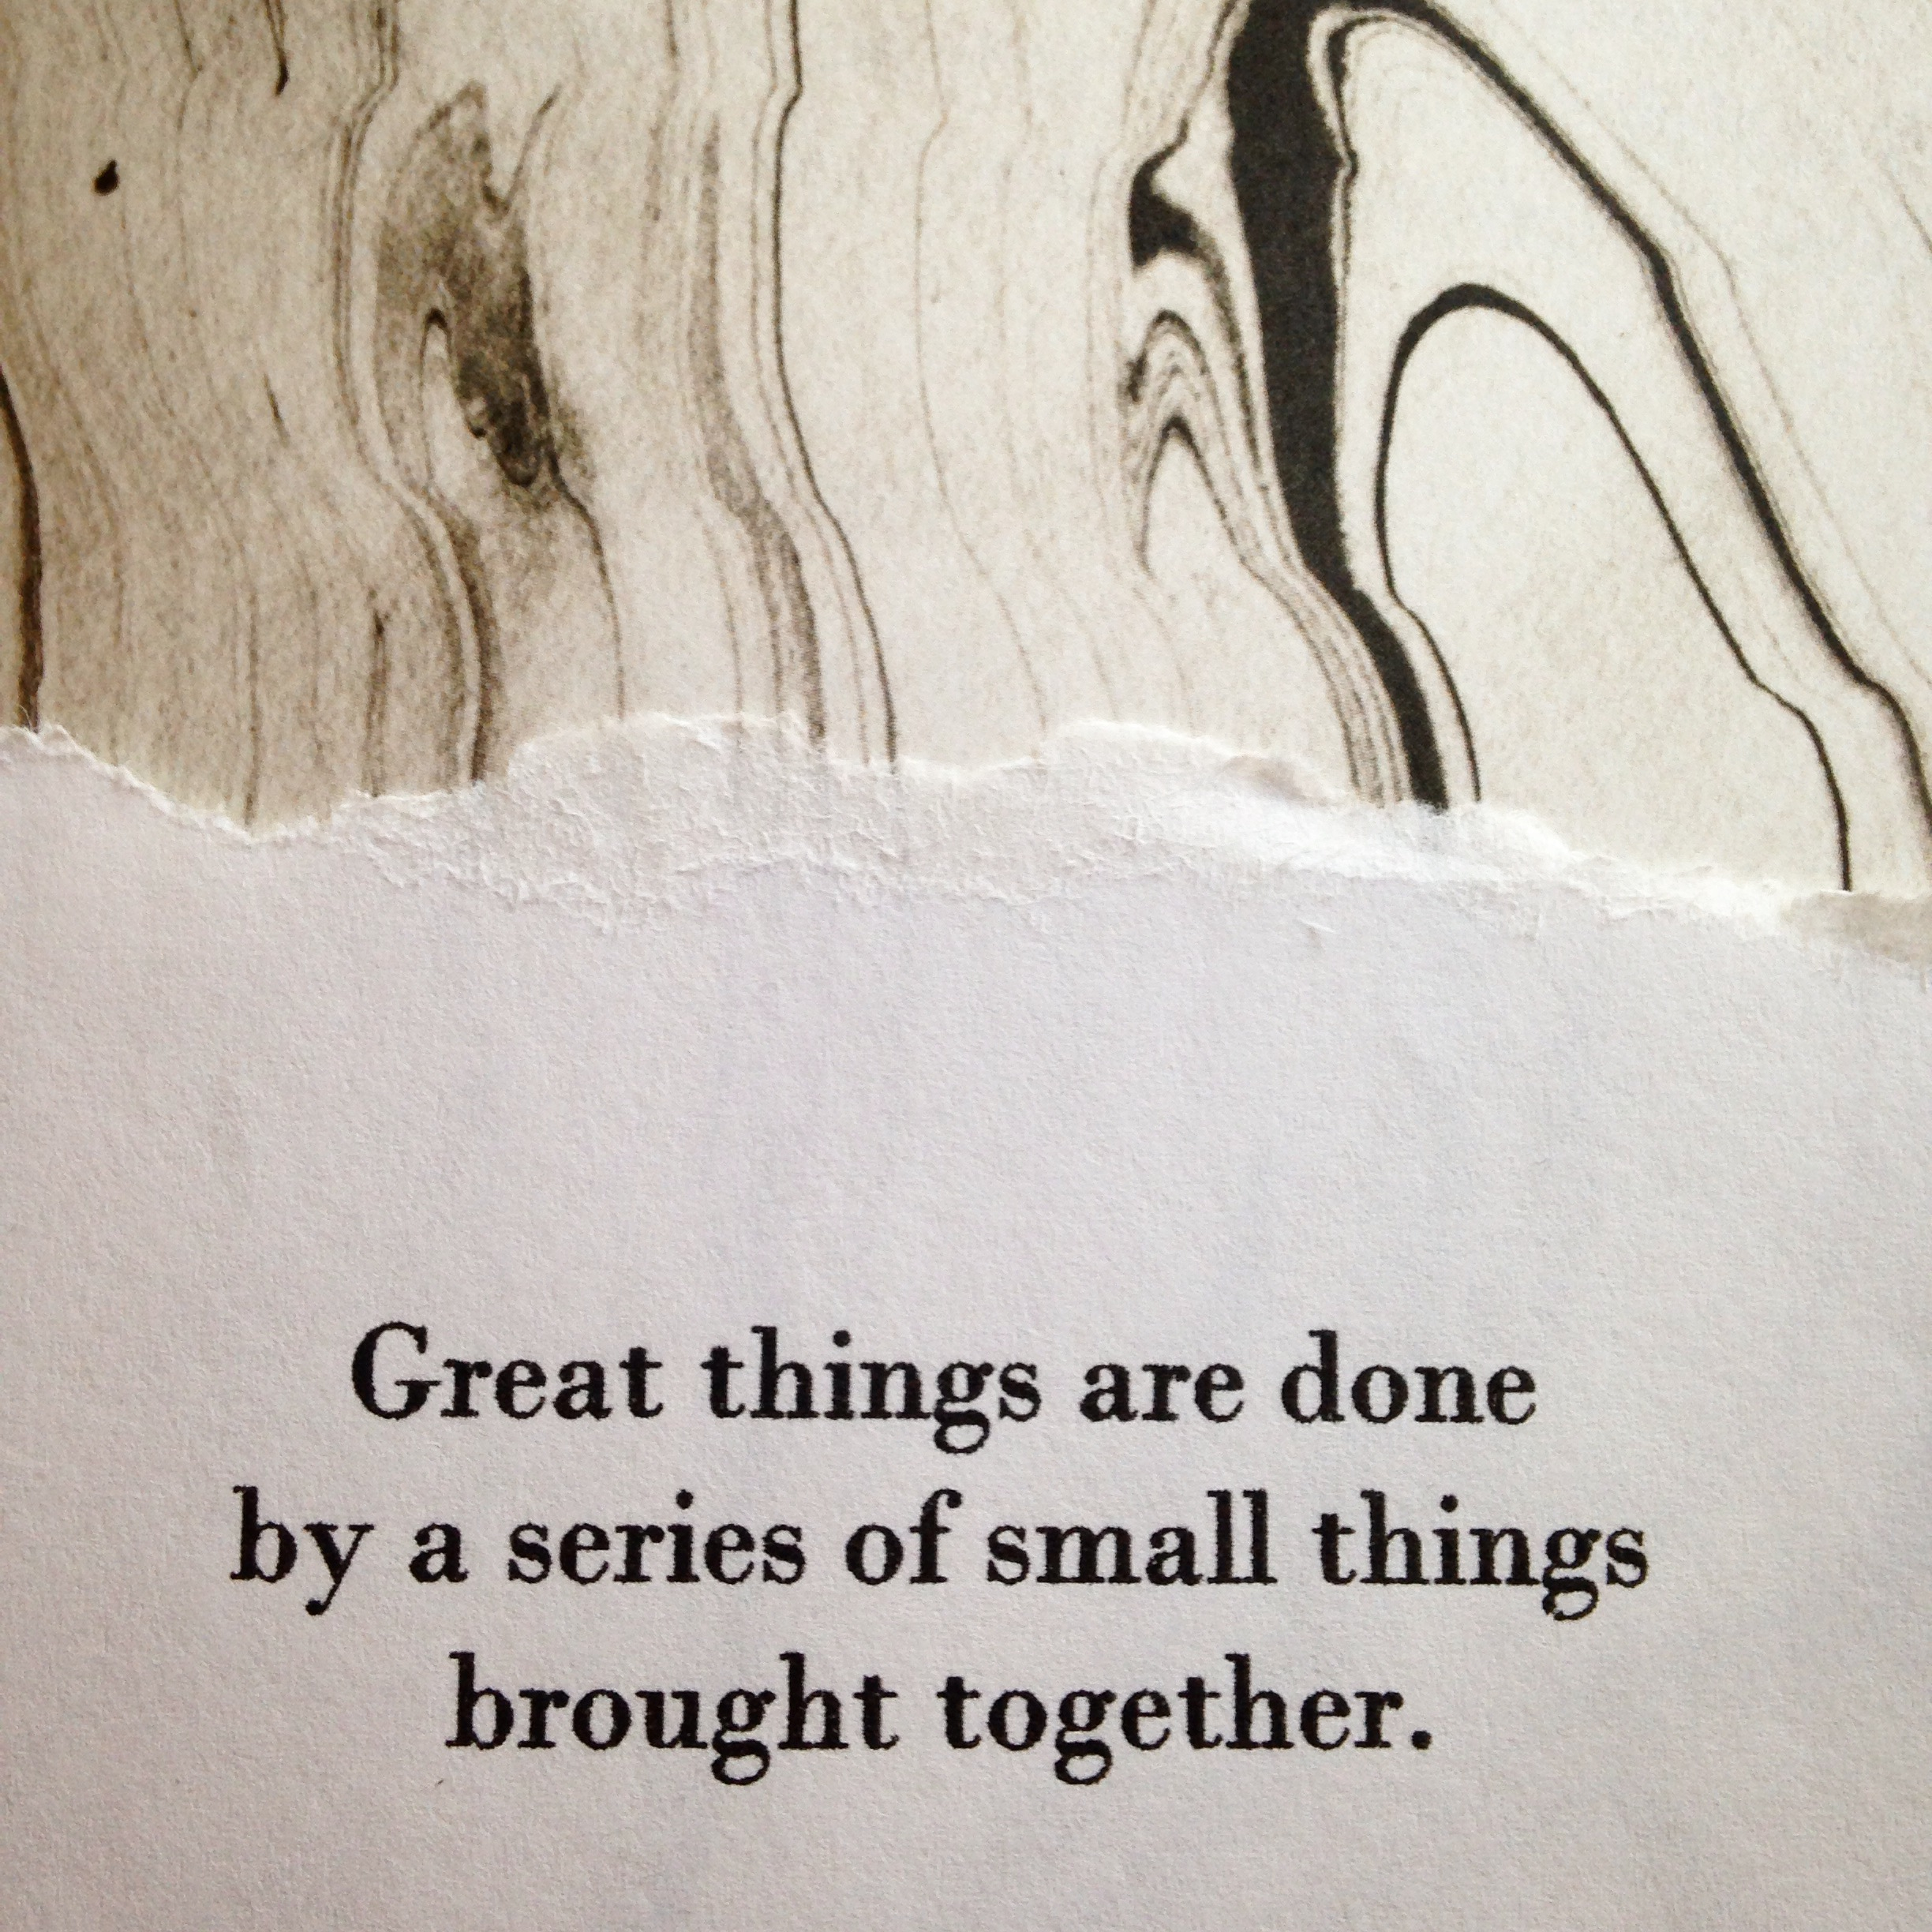 Small steps add up. Let's get good at the small steps. | lucyflint.com